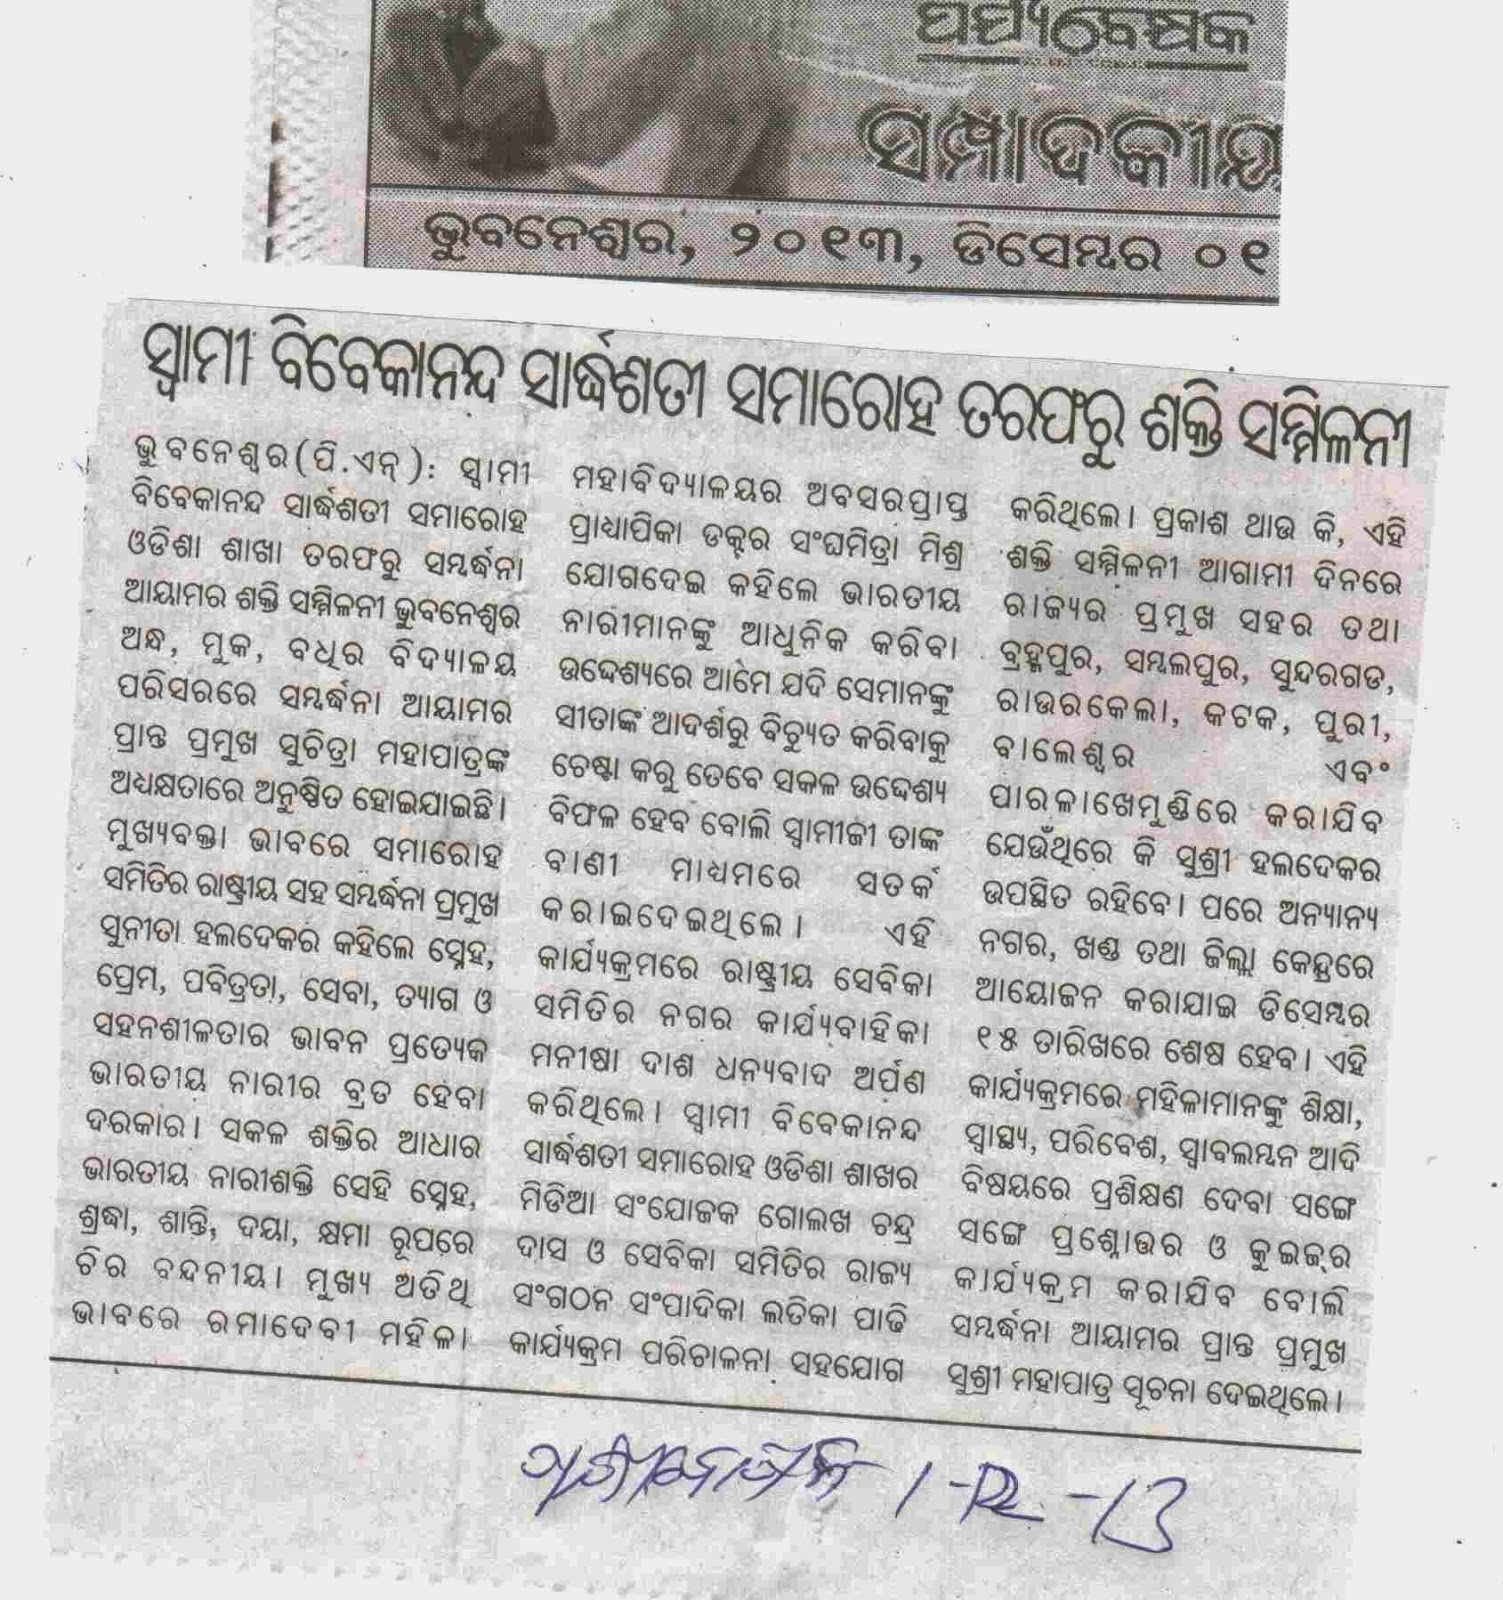 essay on newspaper in odia dianellapolishingcomau essay on newspaper in odia